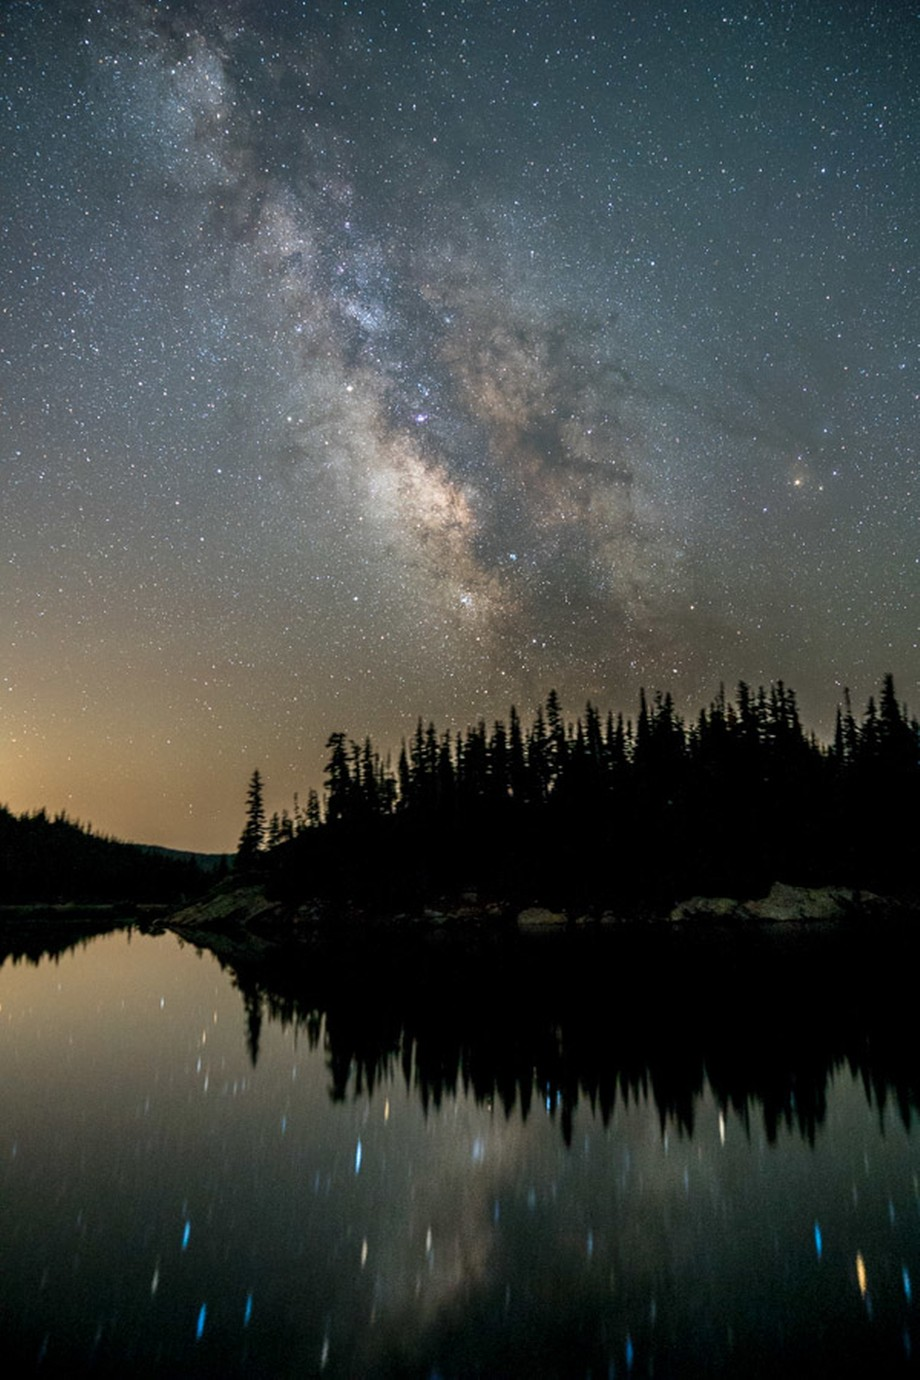 Milky Way Reflections by susanelizabethb - Capture The Milky Way Photo Contest